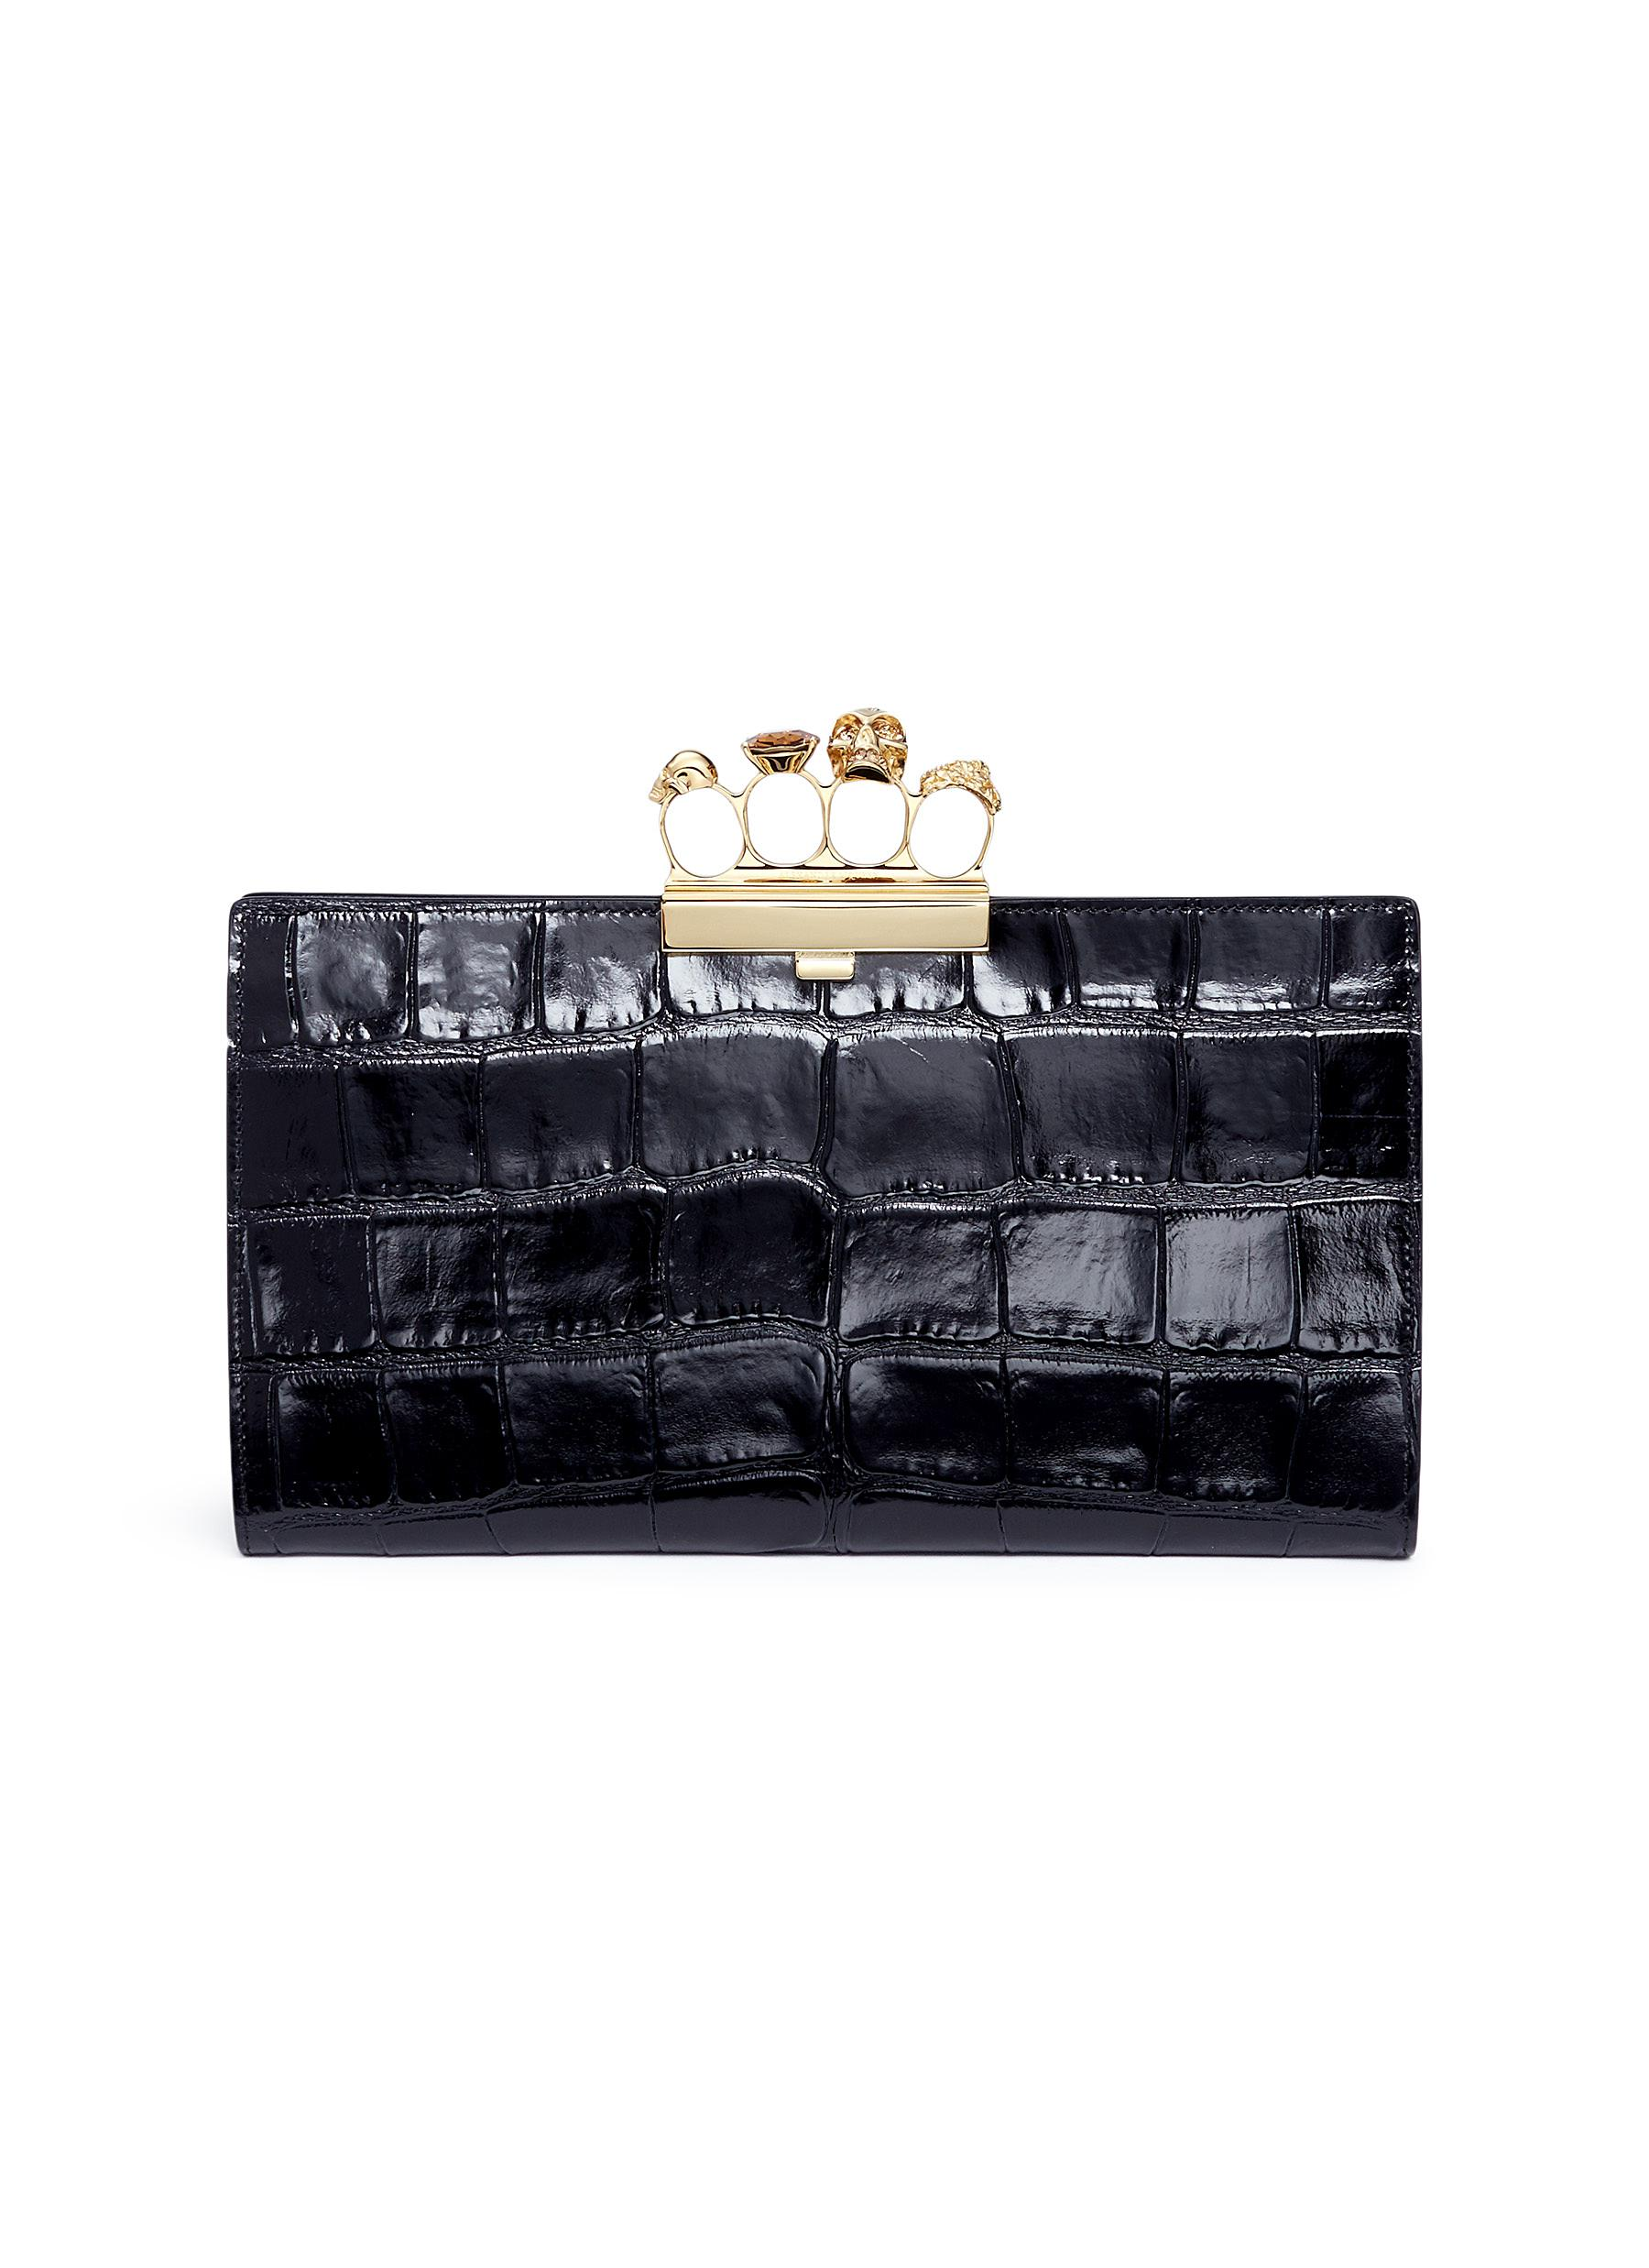 Croc embossed leather knuckle clutch by Alexander McQueen